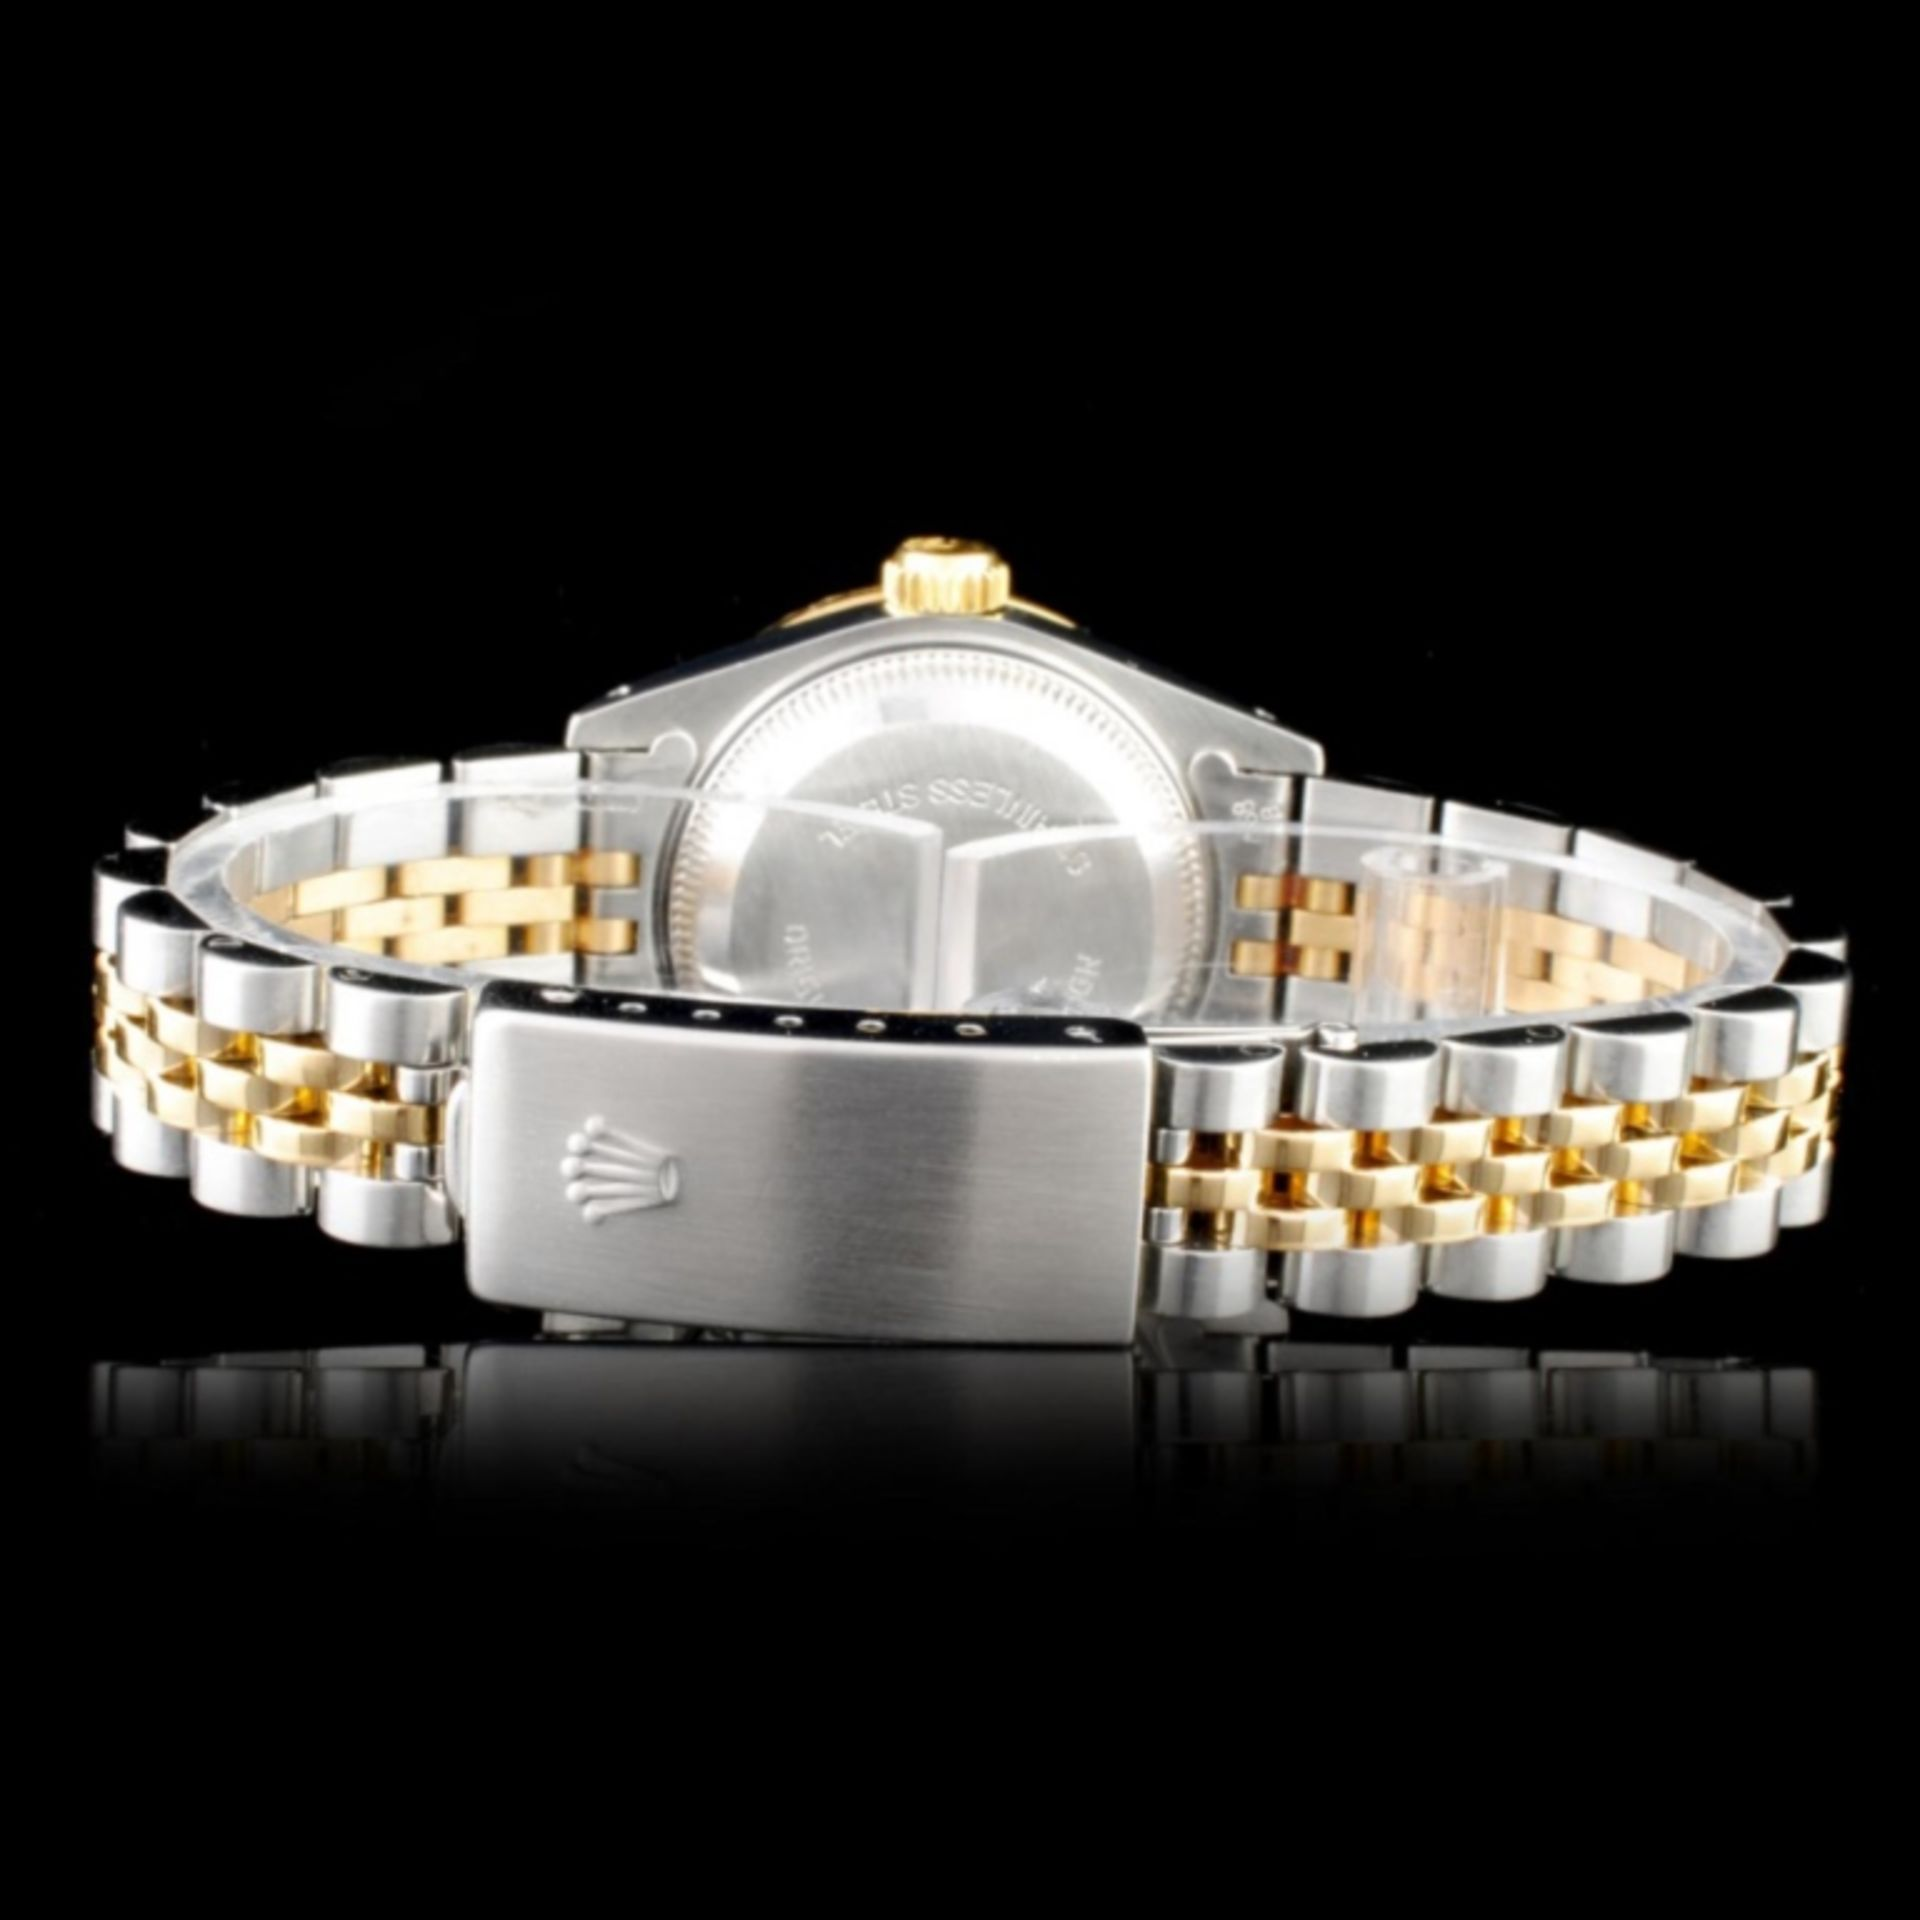 Rolex YG/SS DateJust Ladies Diamond Watch - Image 3 of 5